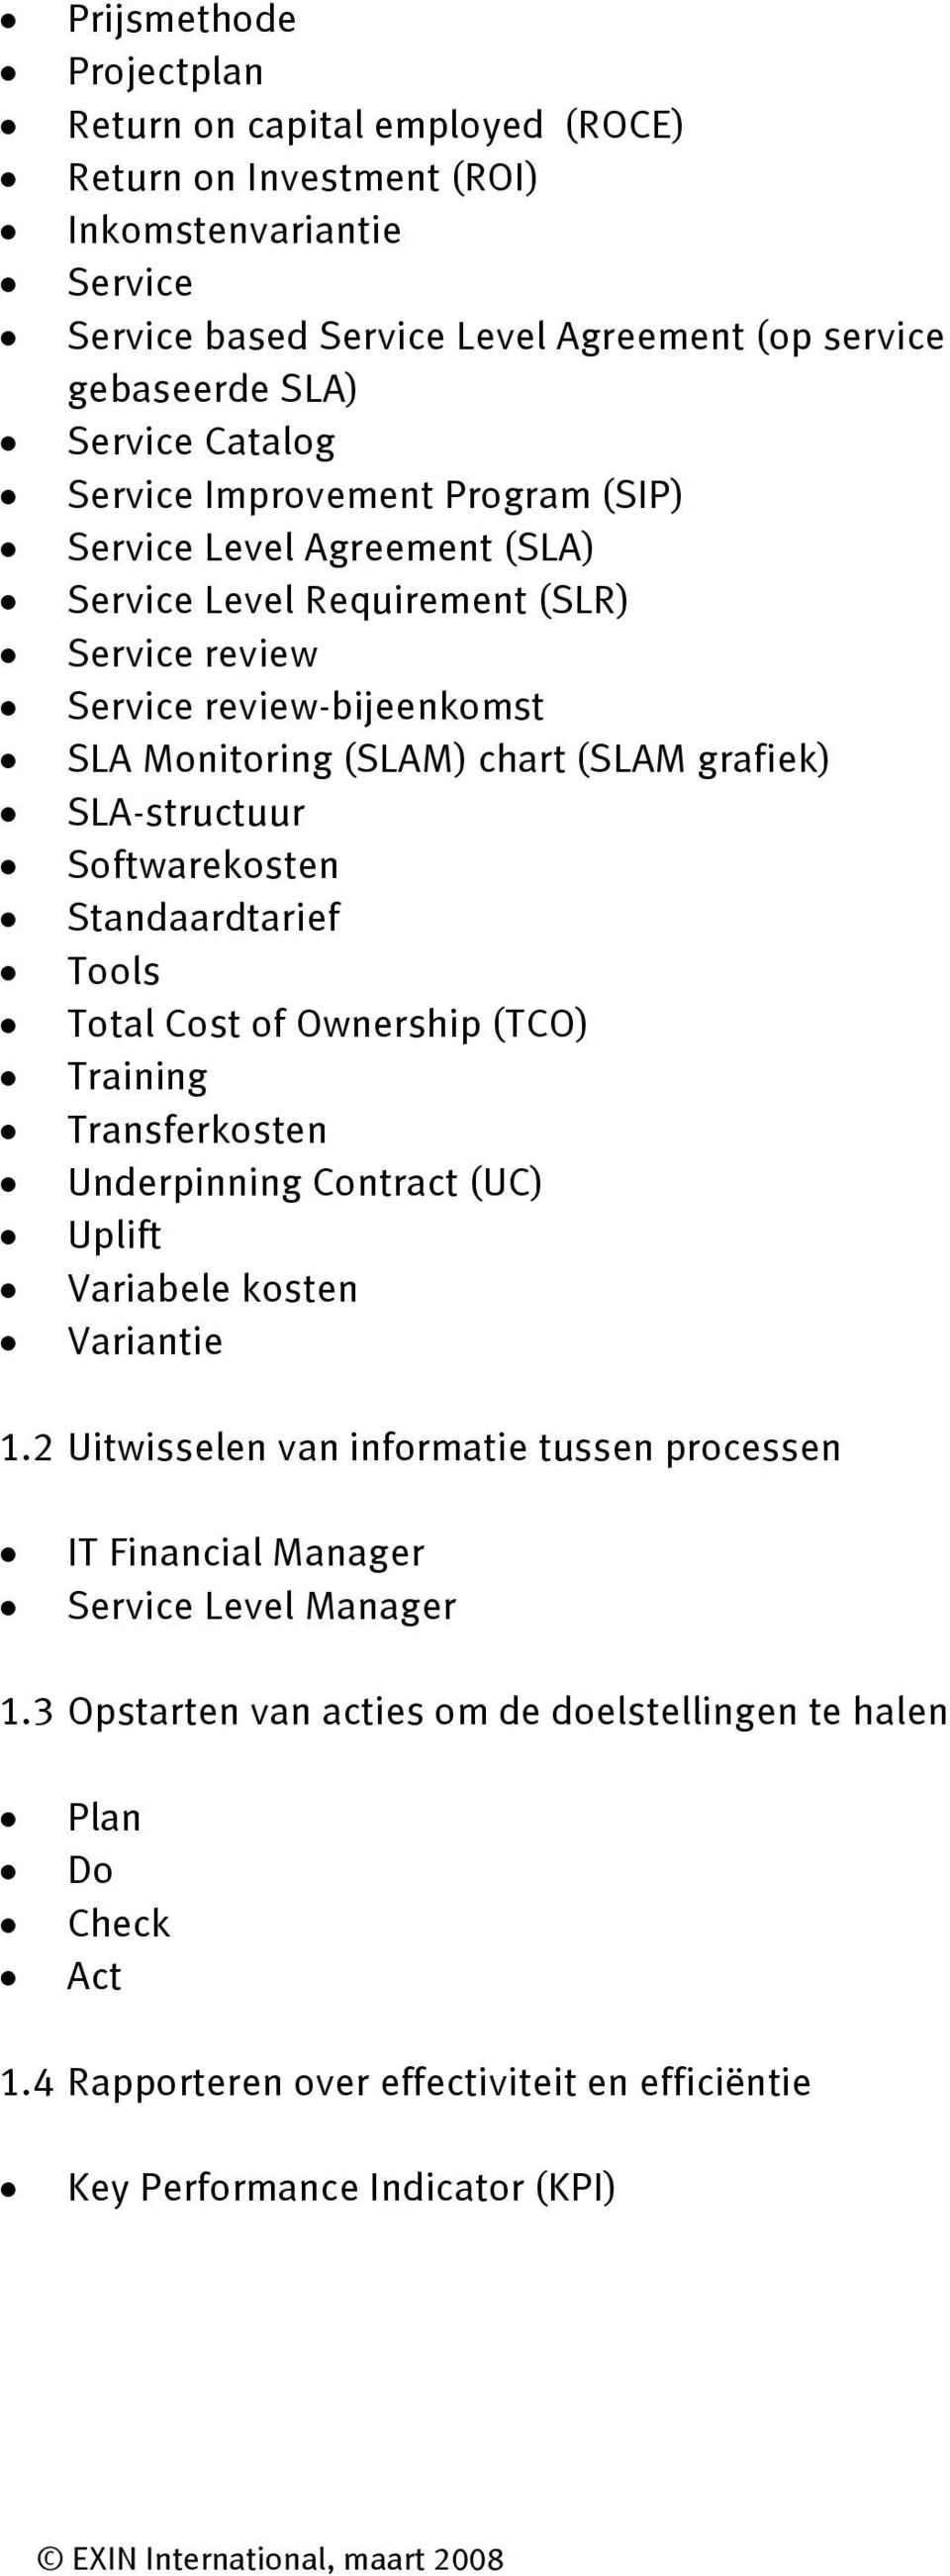 Softwarekosten Standaardtarief Tools Total Cost of Ownership (TCO) Training Transferkosten Underpinning Contract (UC) Uplift Variabele kosten Variantie 1.